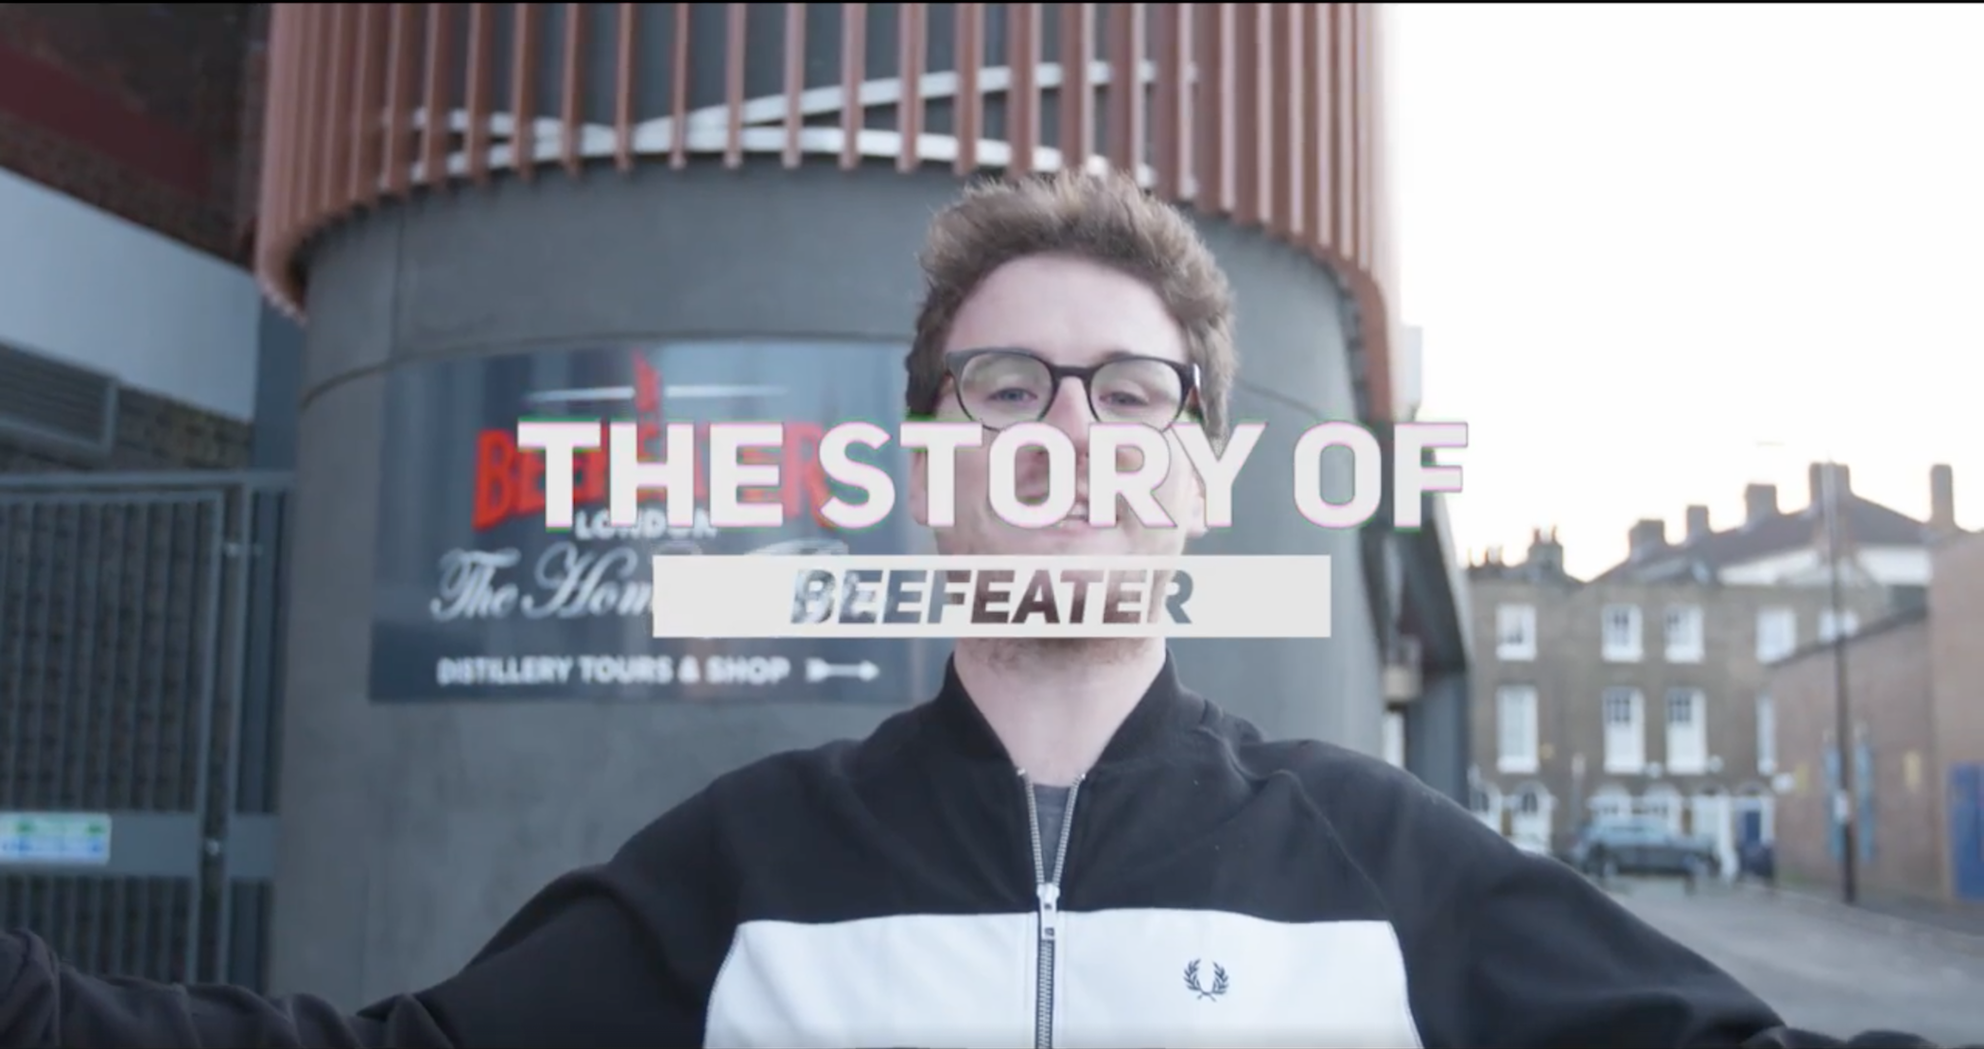 The story of Beefeater - Paul Taylor